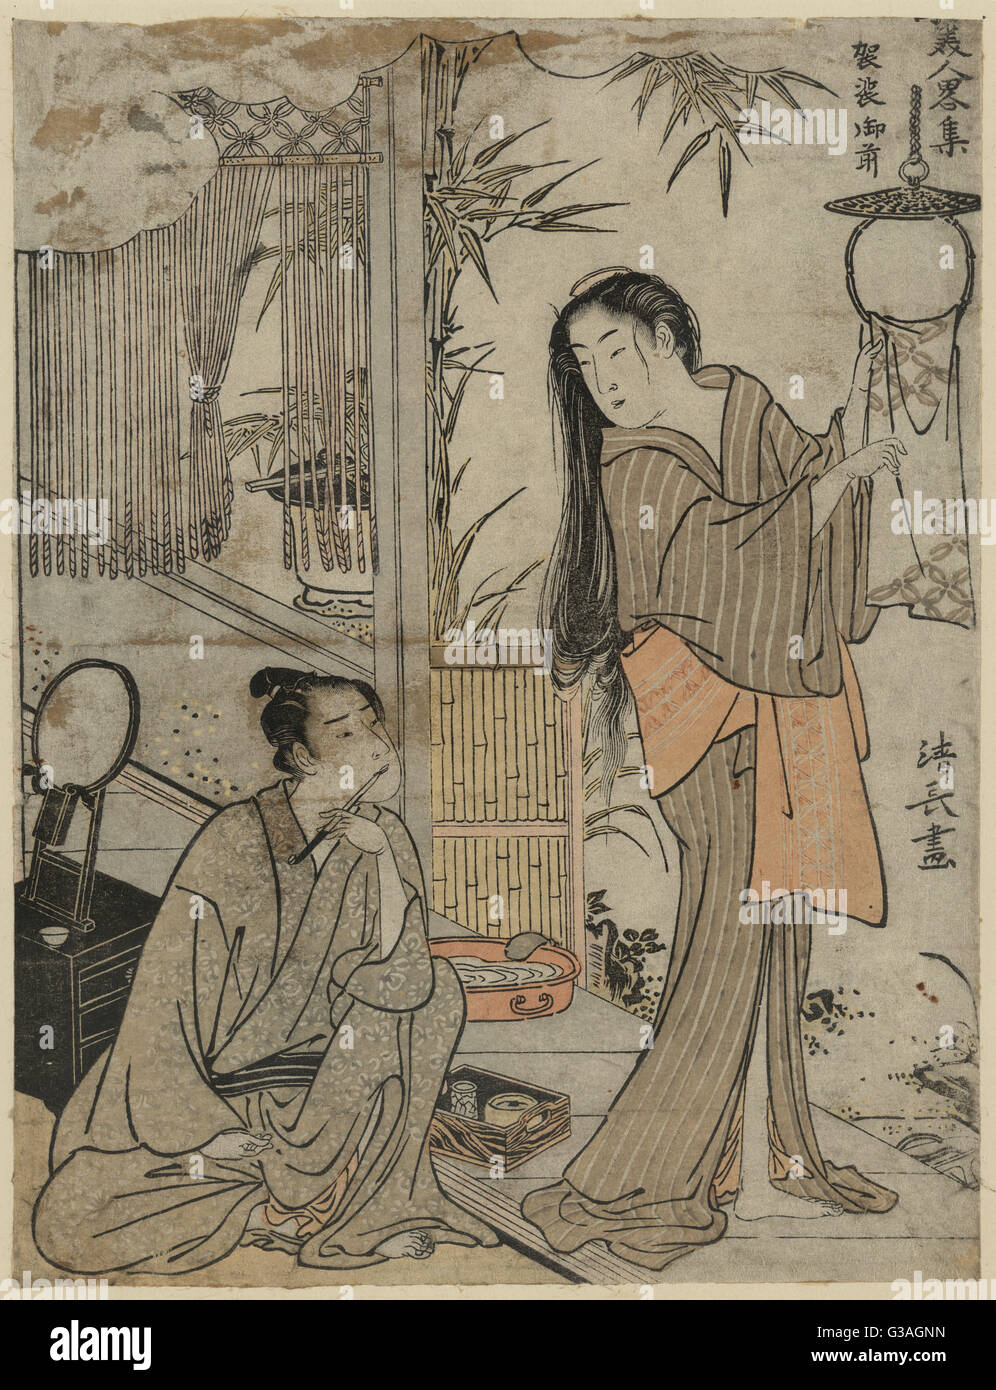 Kesa Gozen of the Heian Period. Print shows a domestic scene with a man sitting on the floor holding writing implements - Stock Image